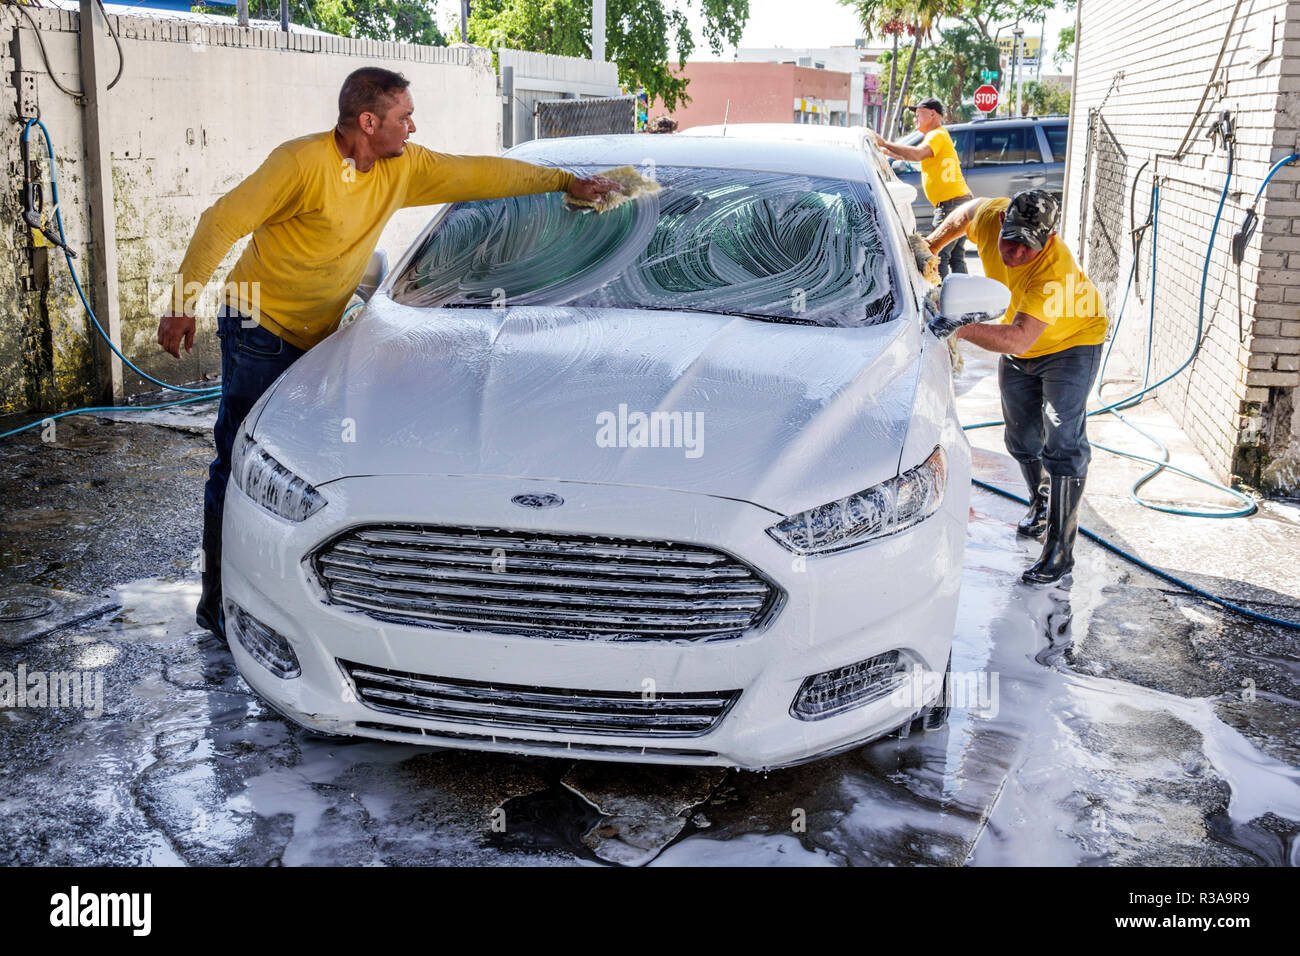 Miami Florida Little Havana car wash white Ford Fusion Hispanic man working cleaning soap soaping wiping teamwork - Stock Image